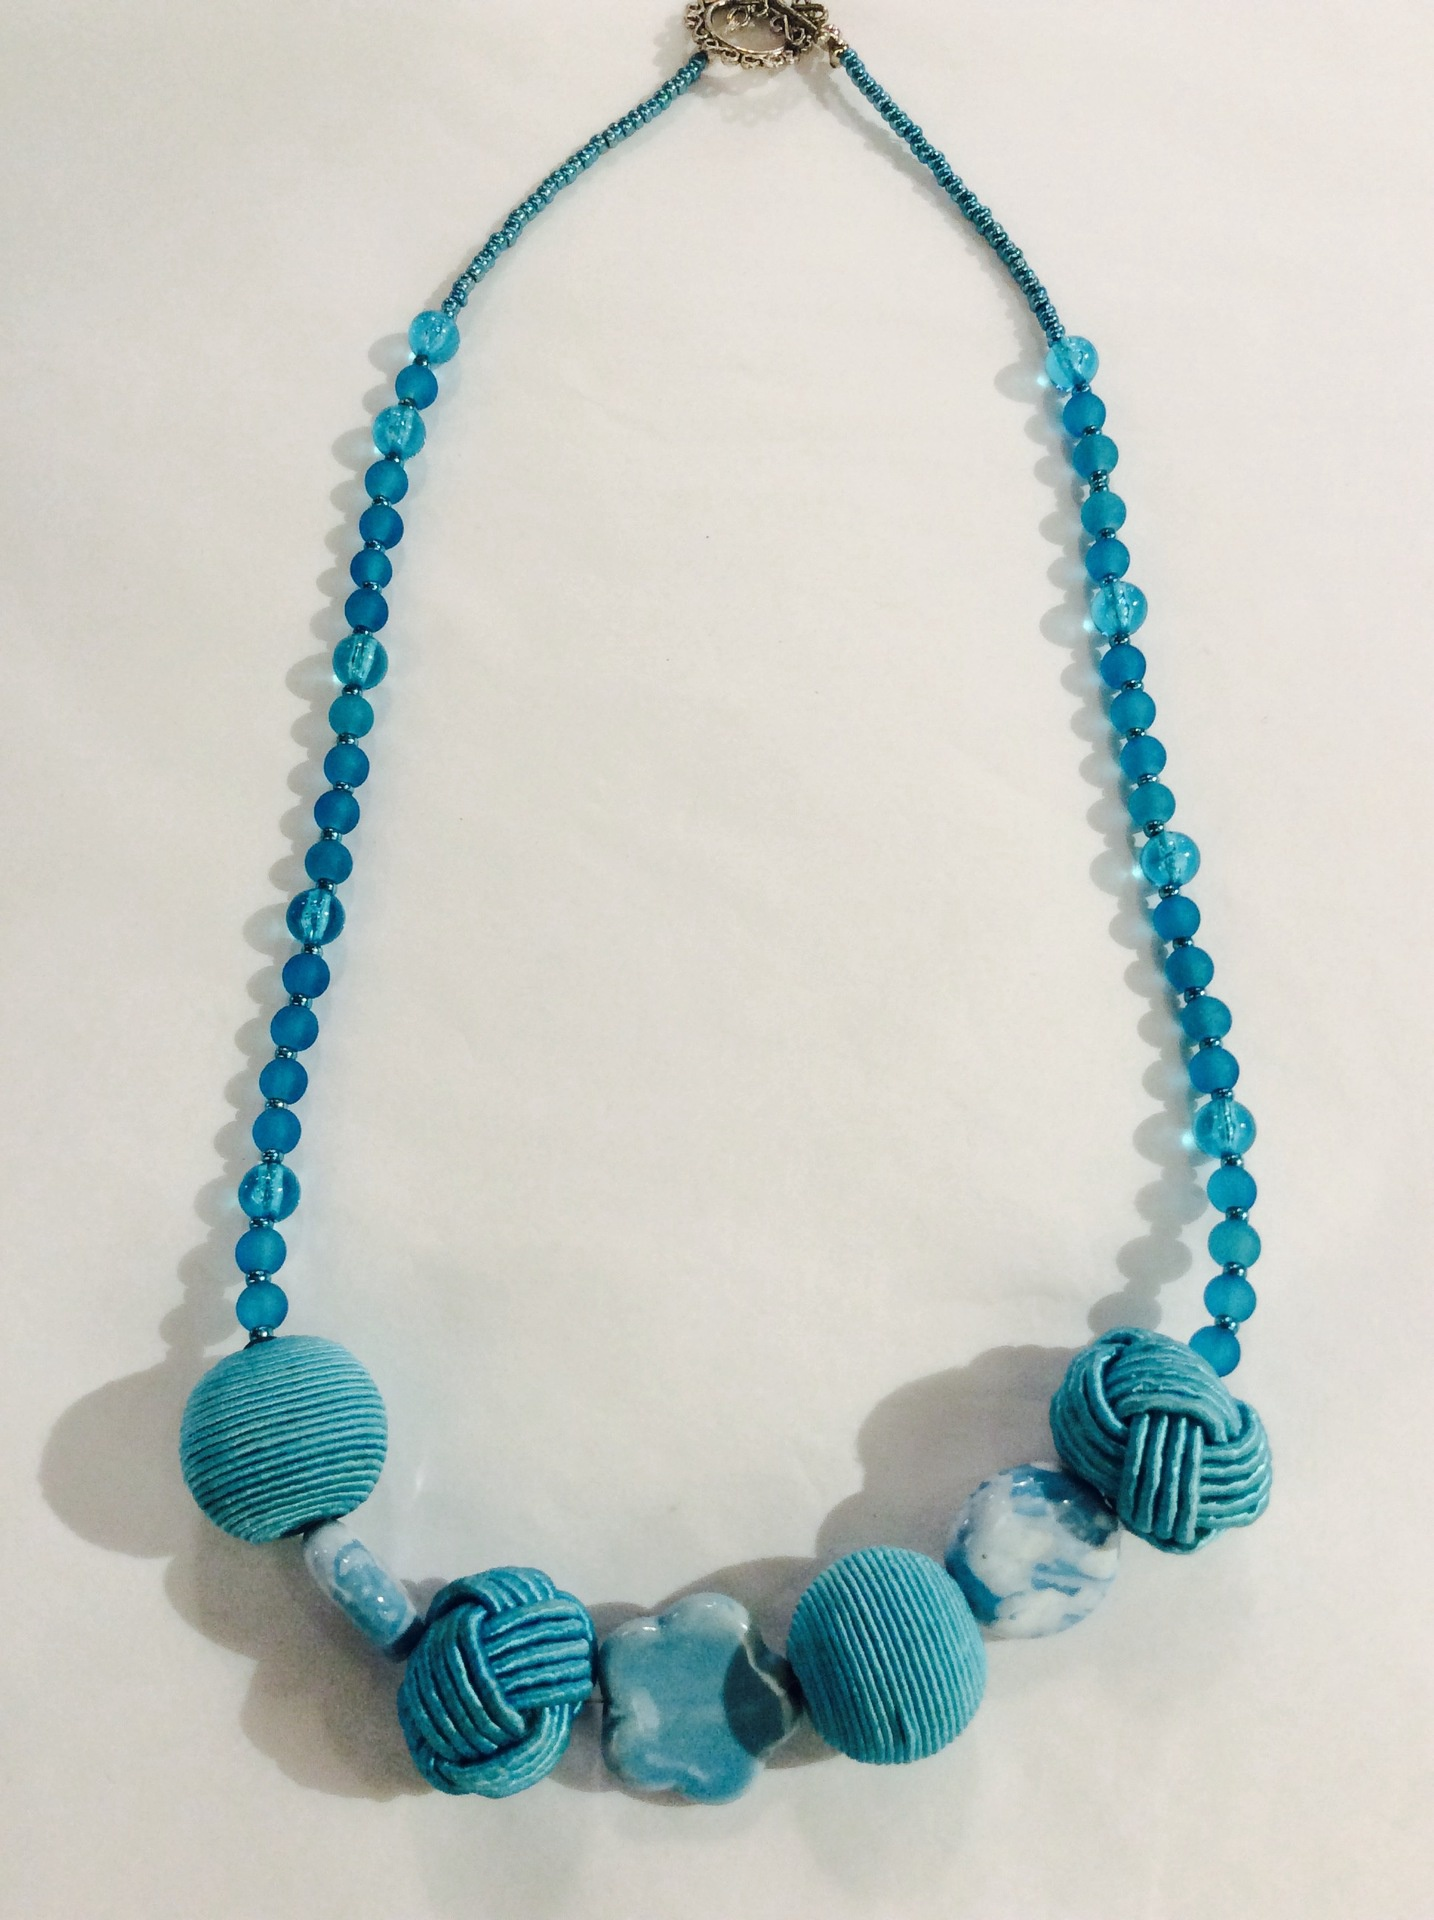 Blue Necklace with Vintage Rope Beads